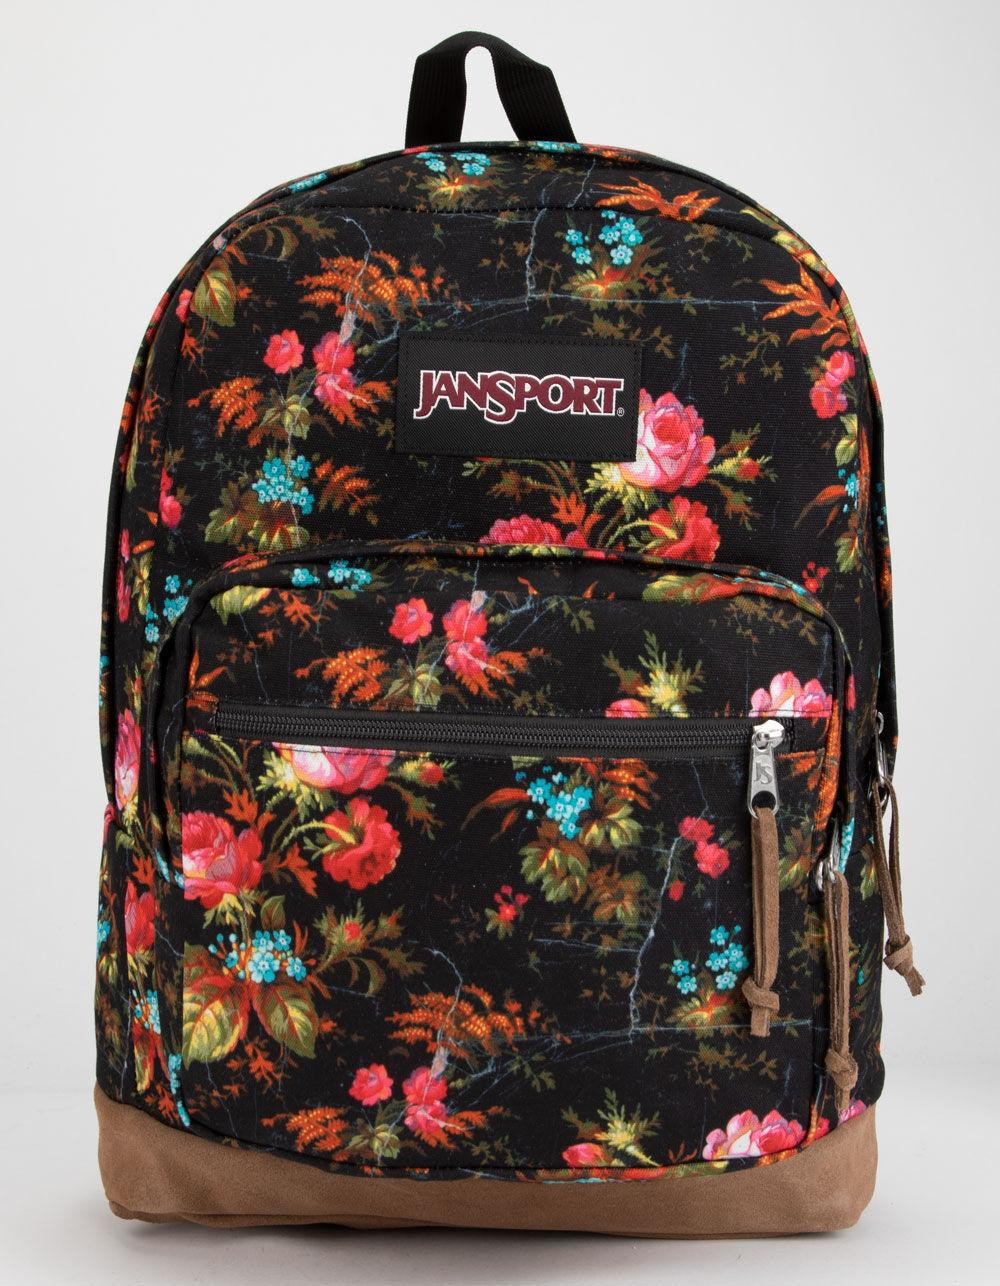 b50bab147 Jansport Right Pack Expressions Countryside Garden Floral Backpack ...